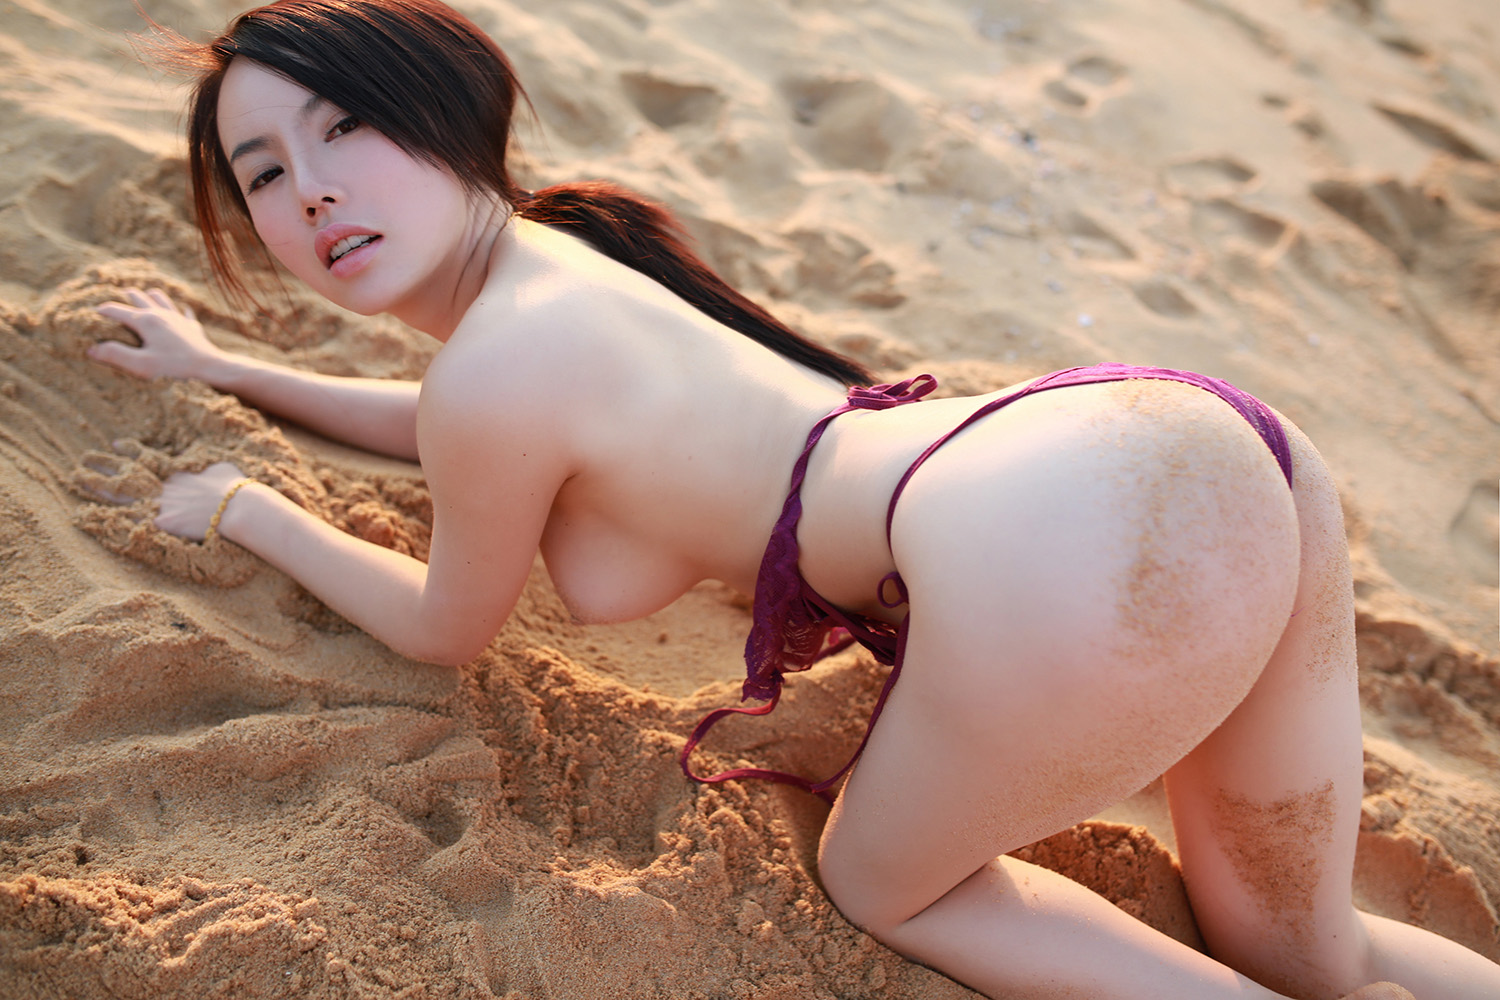 027 - Sexy Nude MYGIRL NO.22 Naked